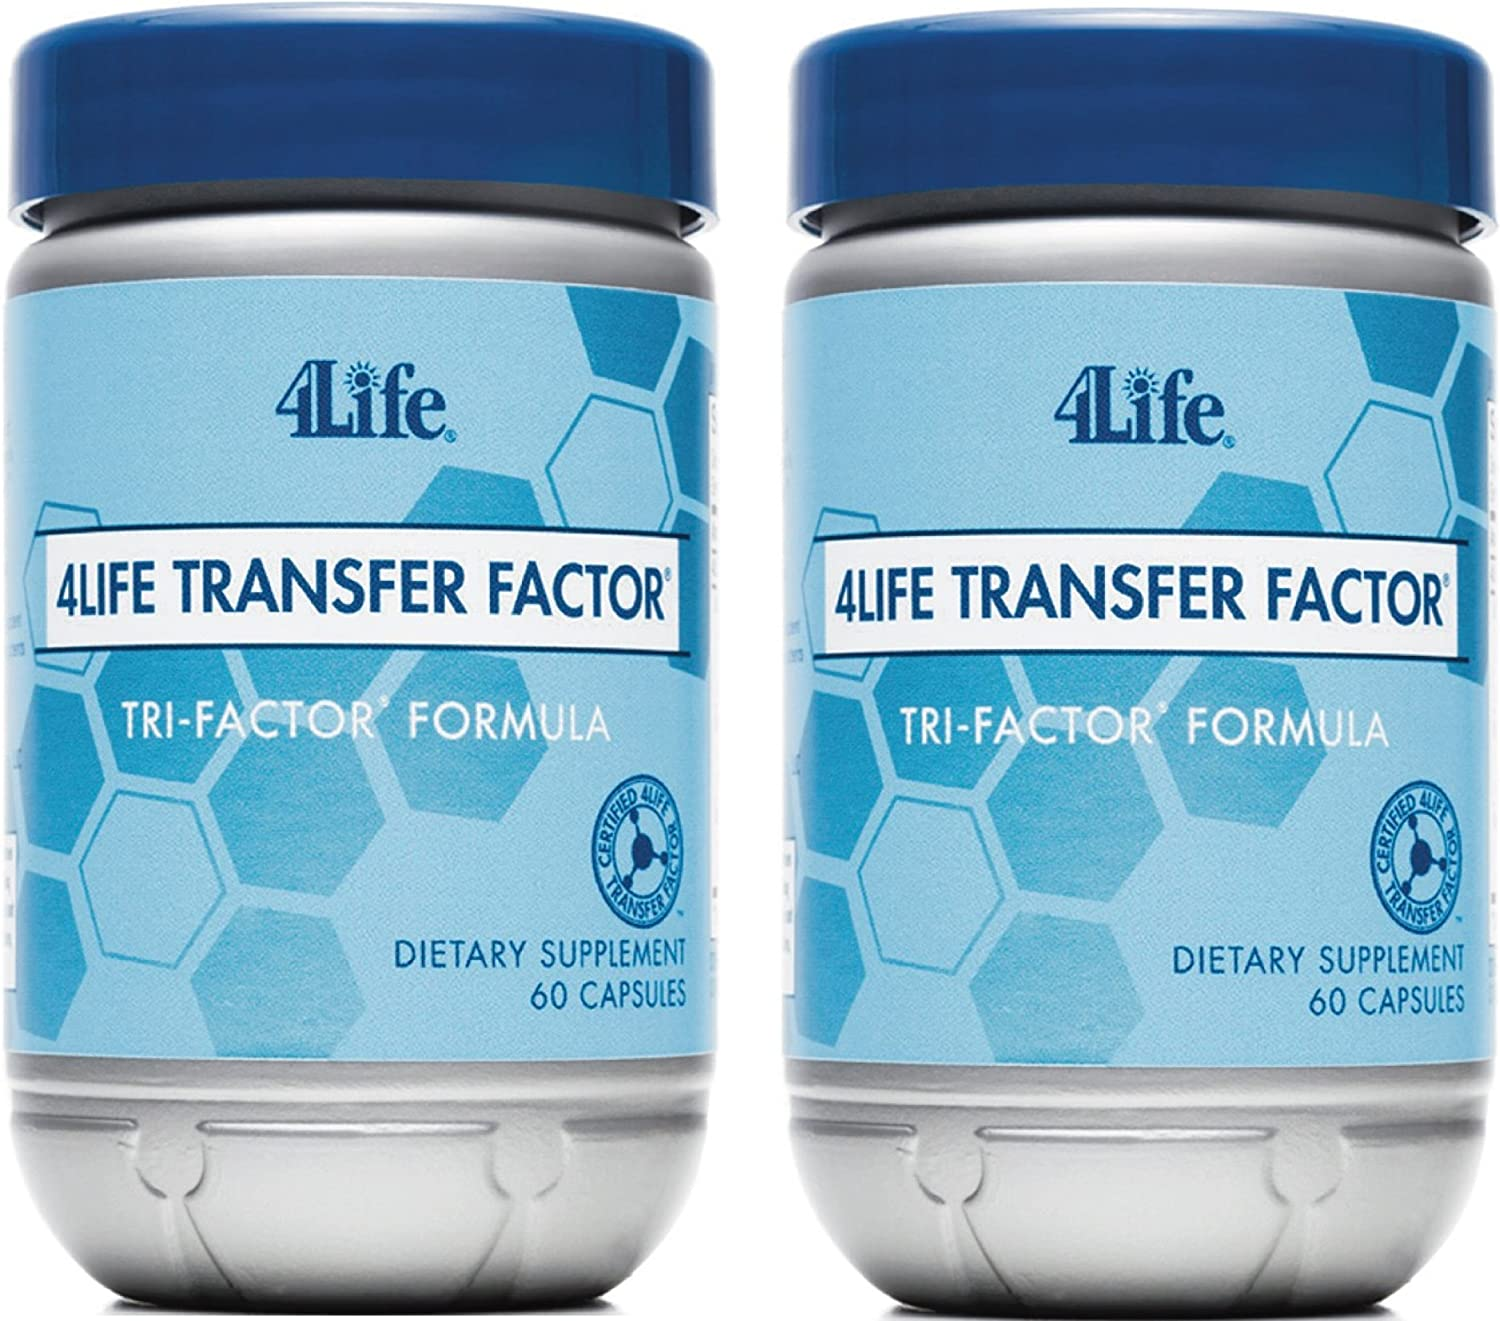 4Life Transfer Factor Tri Factor Formula supported Immune System Exclusive 60 capsules each pack of 2 by 4life Research